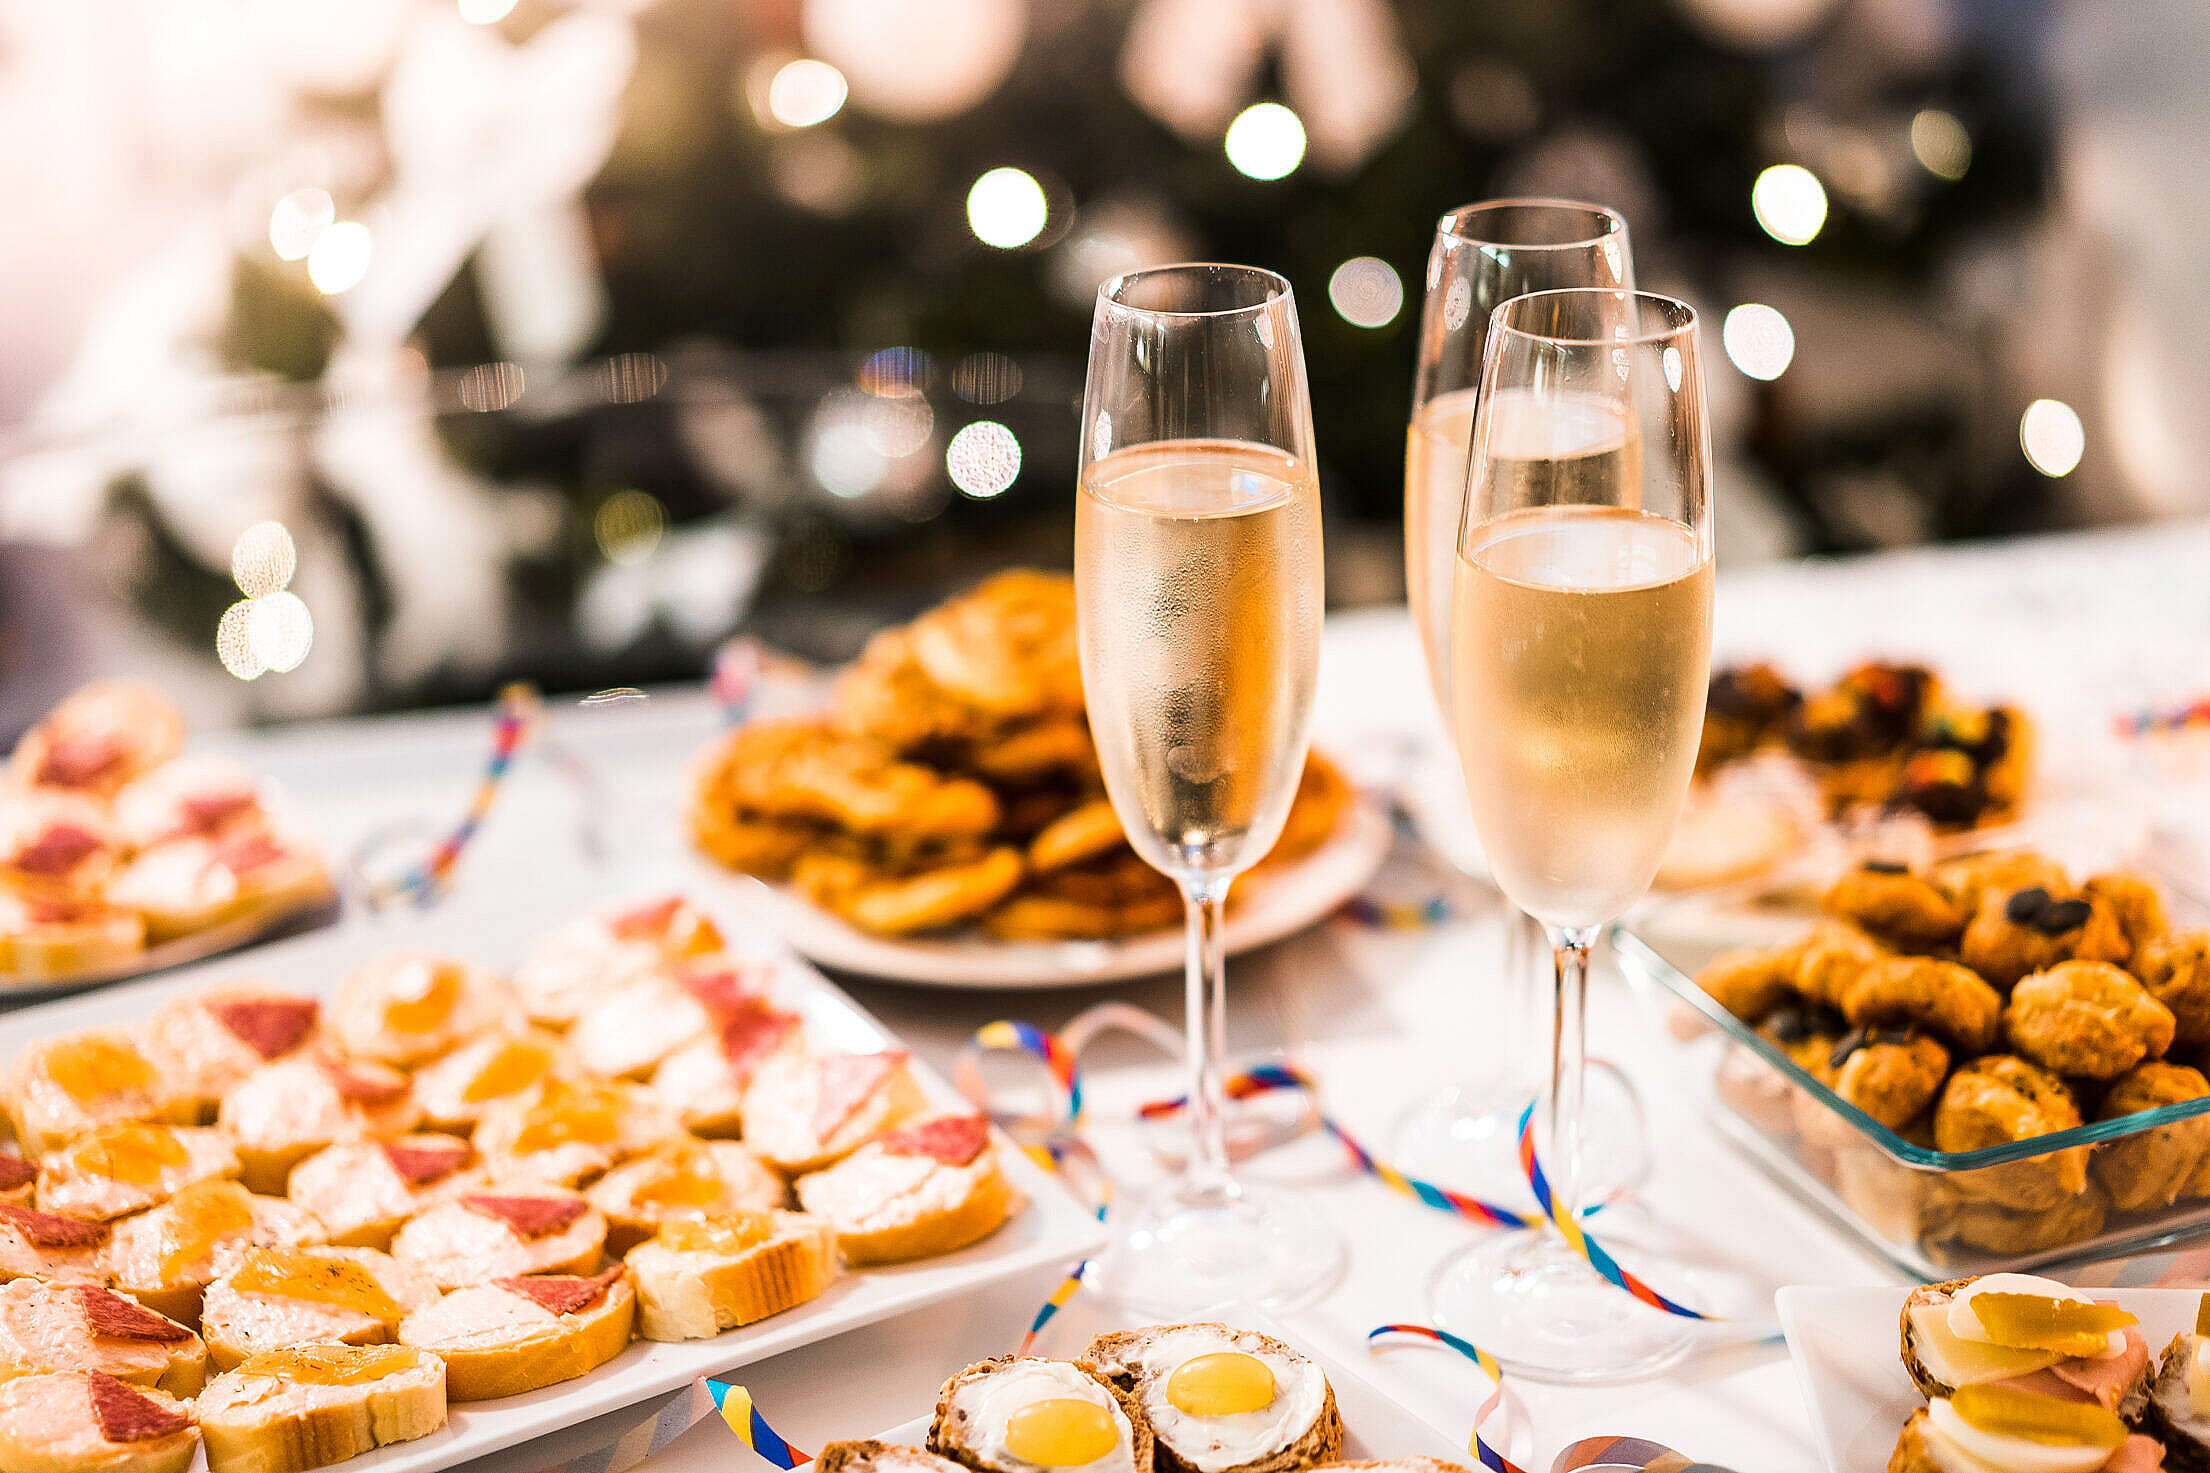 Happy New Year Party Food & Champagne Free Stock Photo